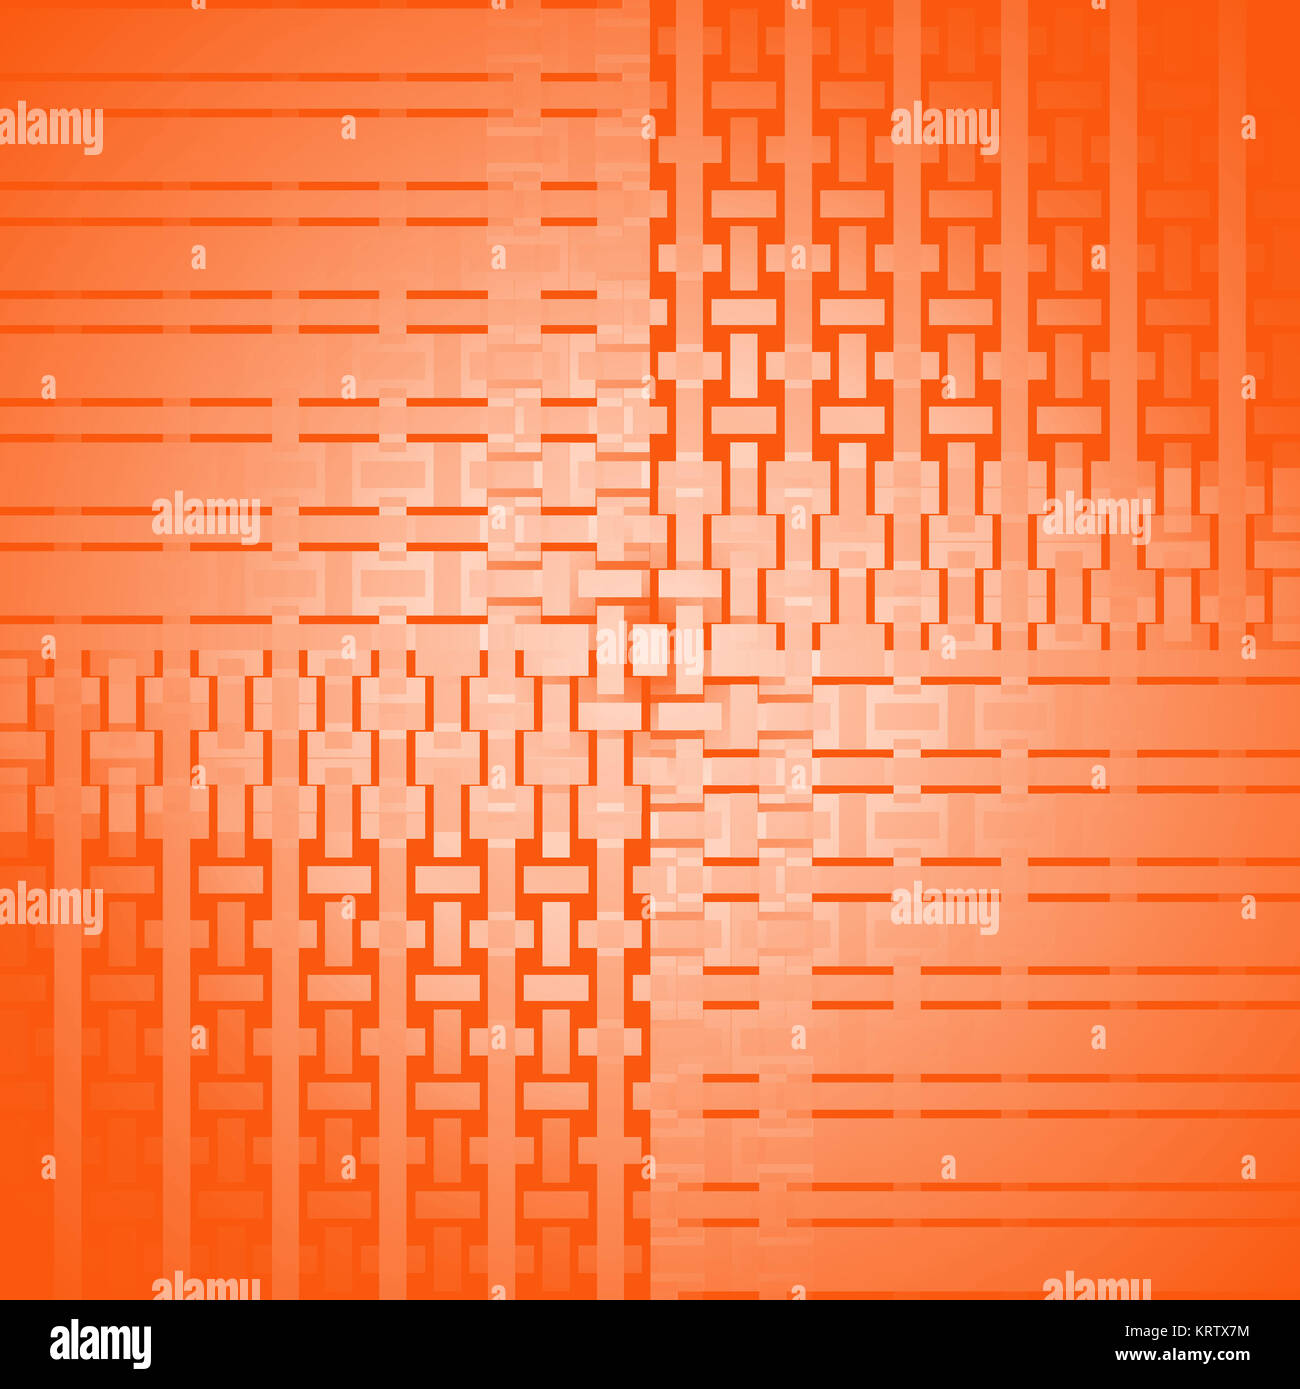 Abstract geometric seamless background single color, netting. Regular rectangles and stripes pattern in orange shades, - Stock Image